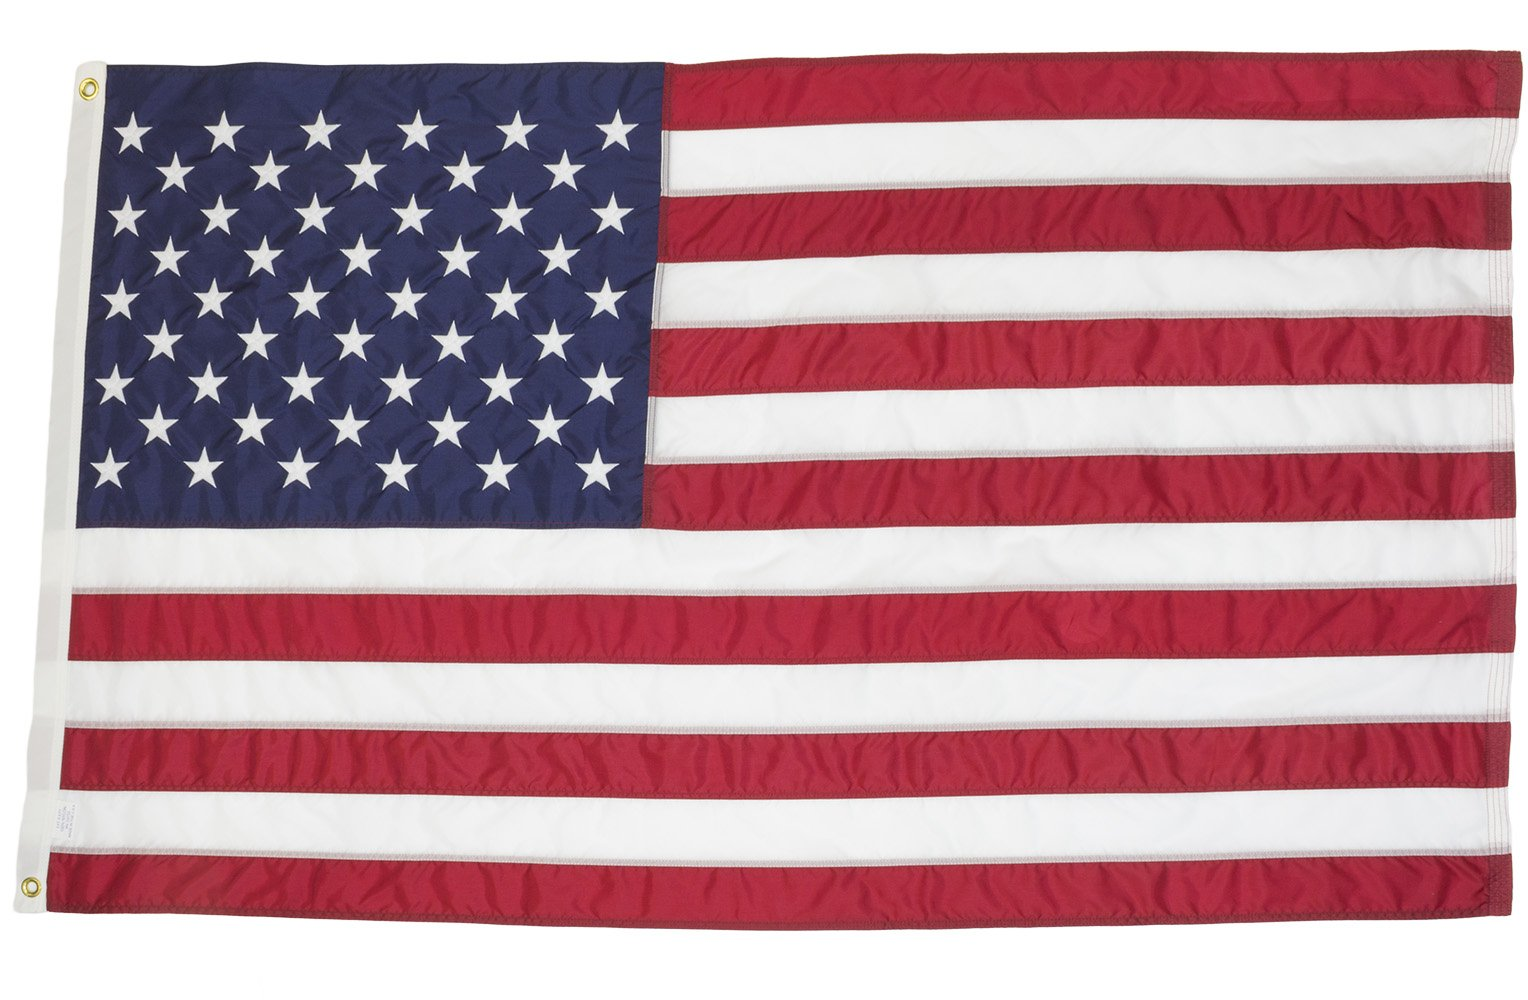 Wilbork American Flag - 100% Made in USA - Strong Like Americans Made by Americans: Embroidered Stars - Sewn Stripes 6x10 ft Outdoor Flag by Wilbork (Image #3)